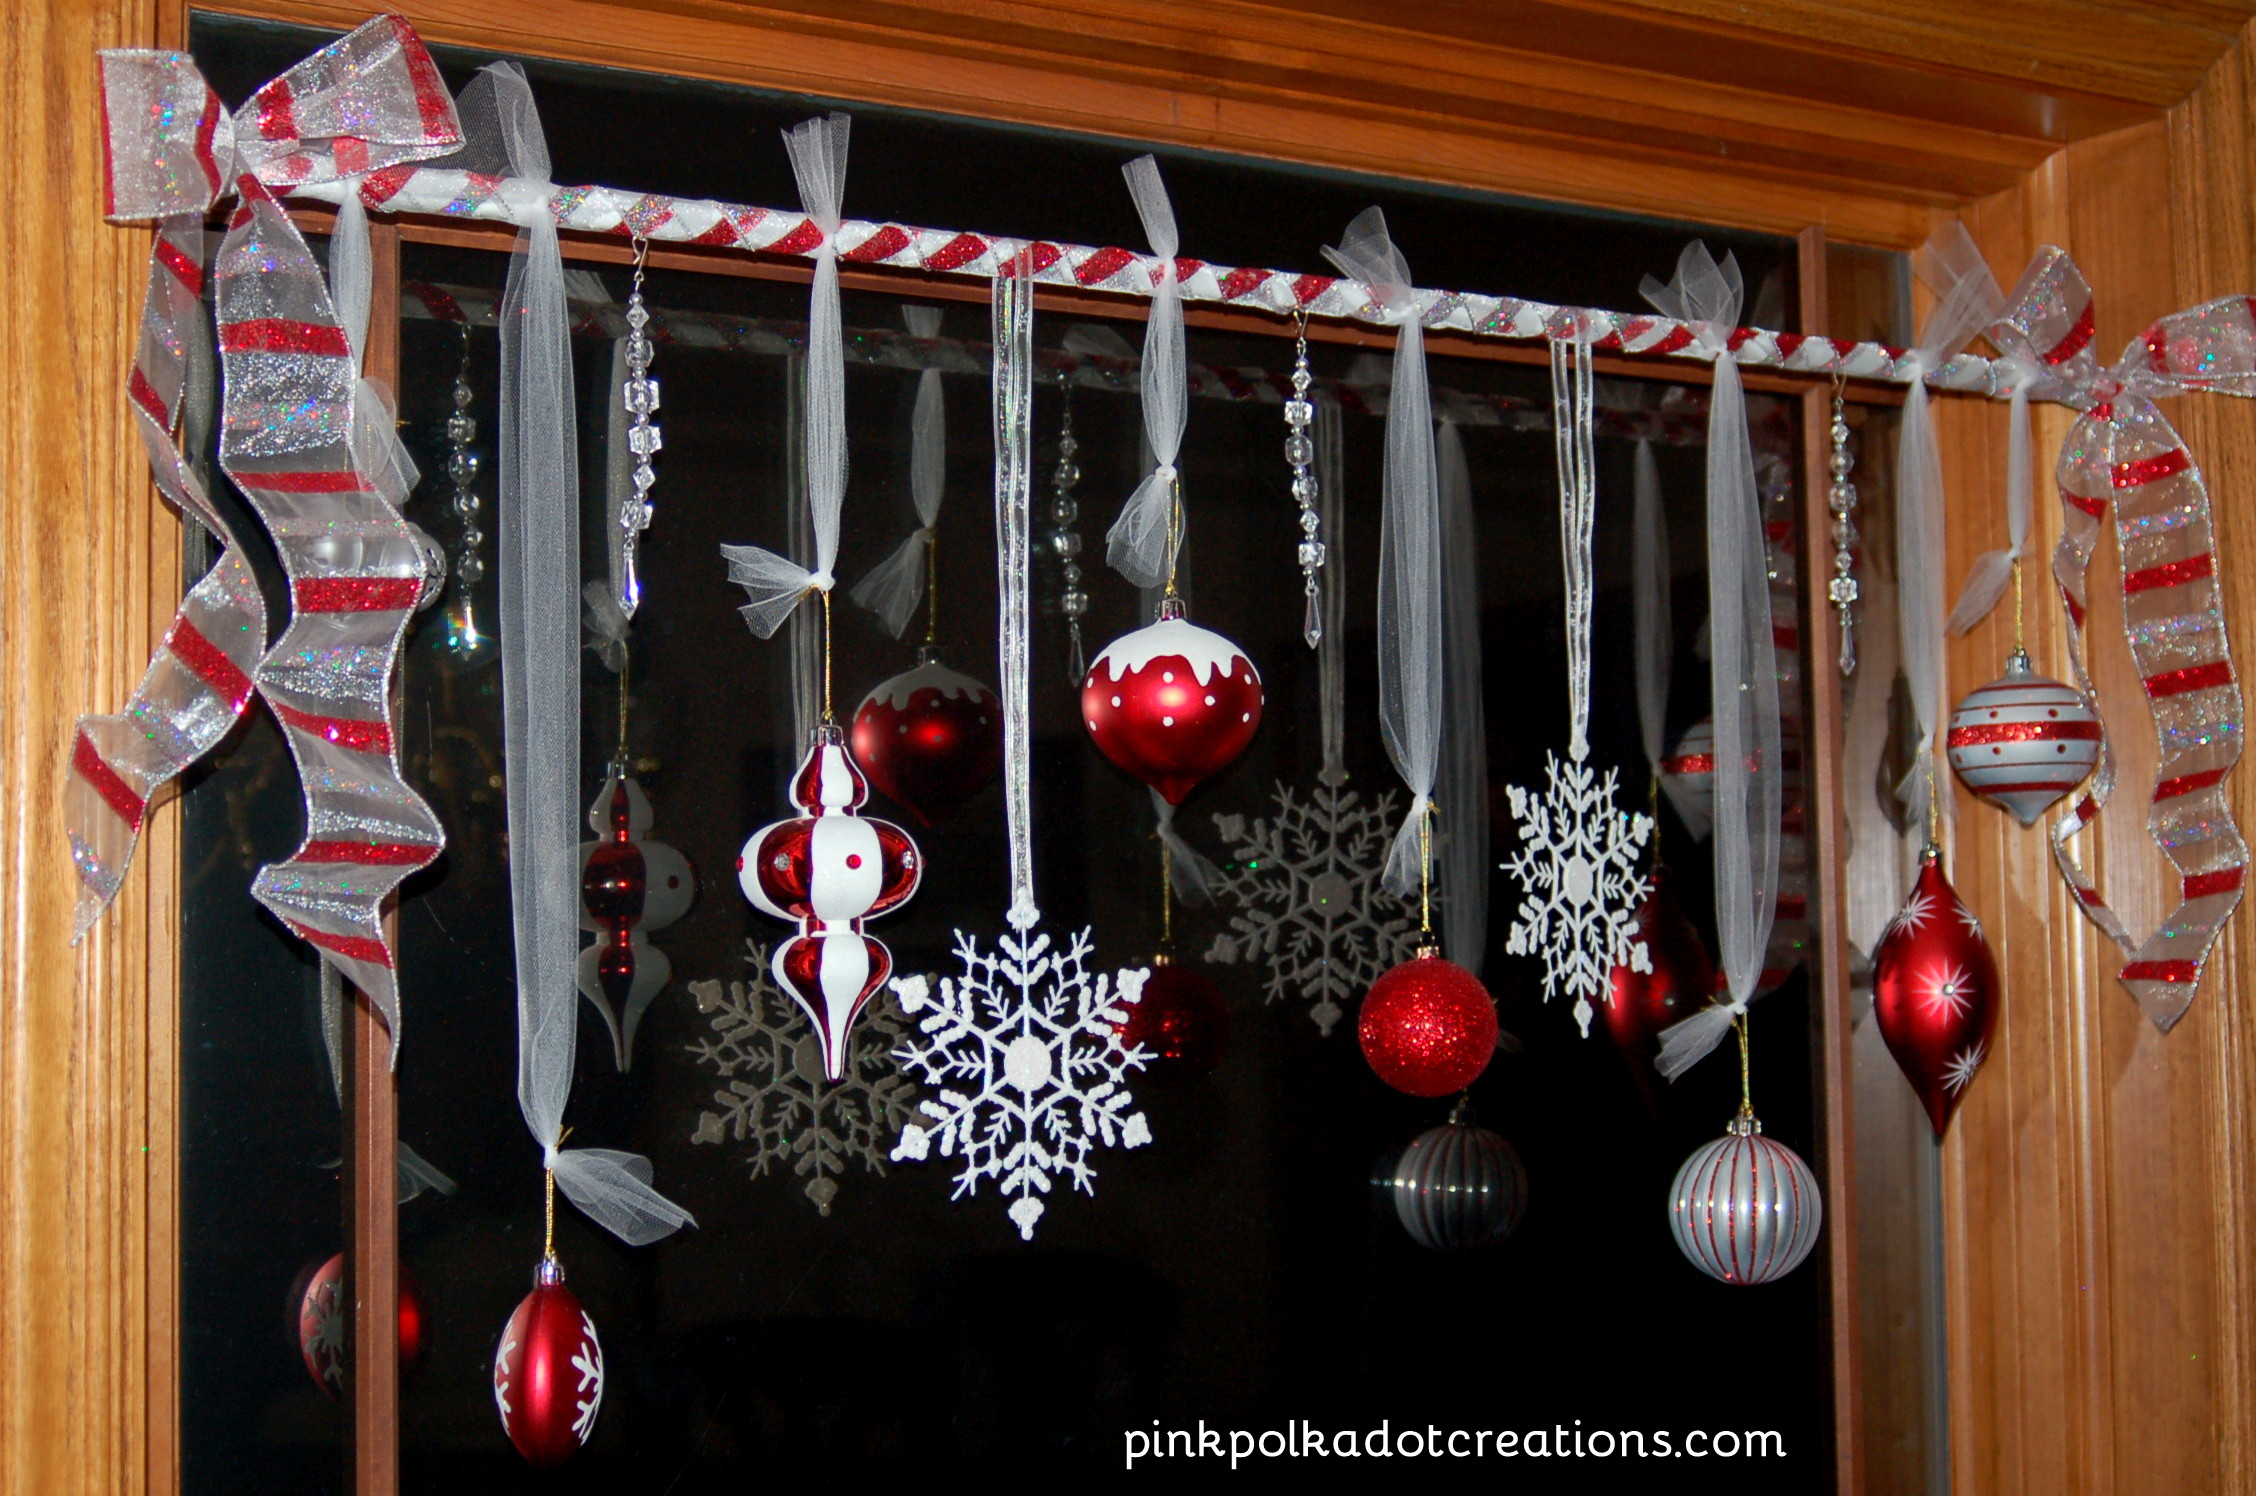 silver and red ribbon with ornaments for christmas on window with wooden frame - How To Decorate Windows For Christmas